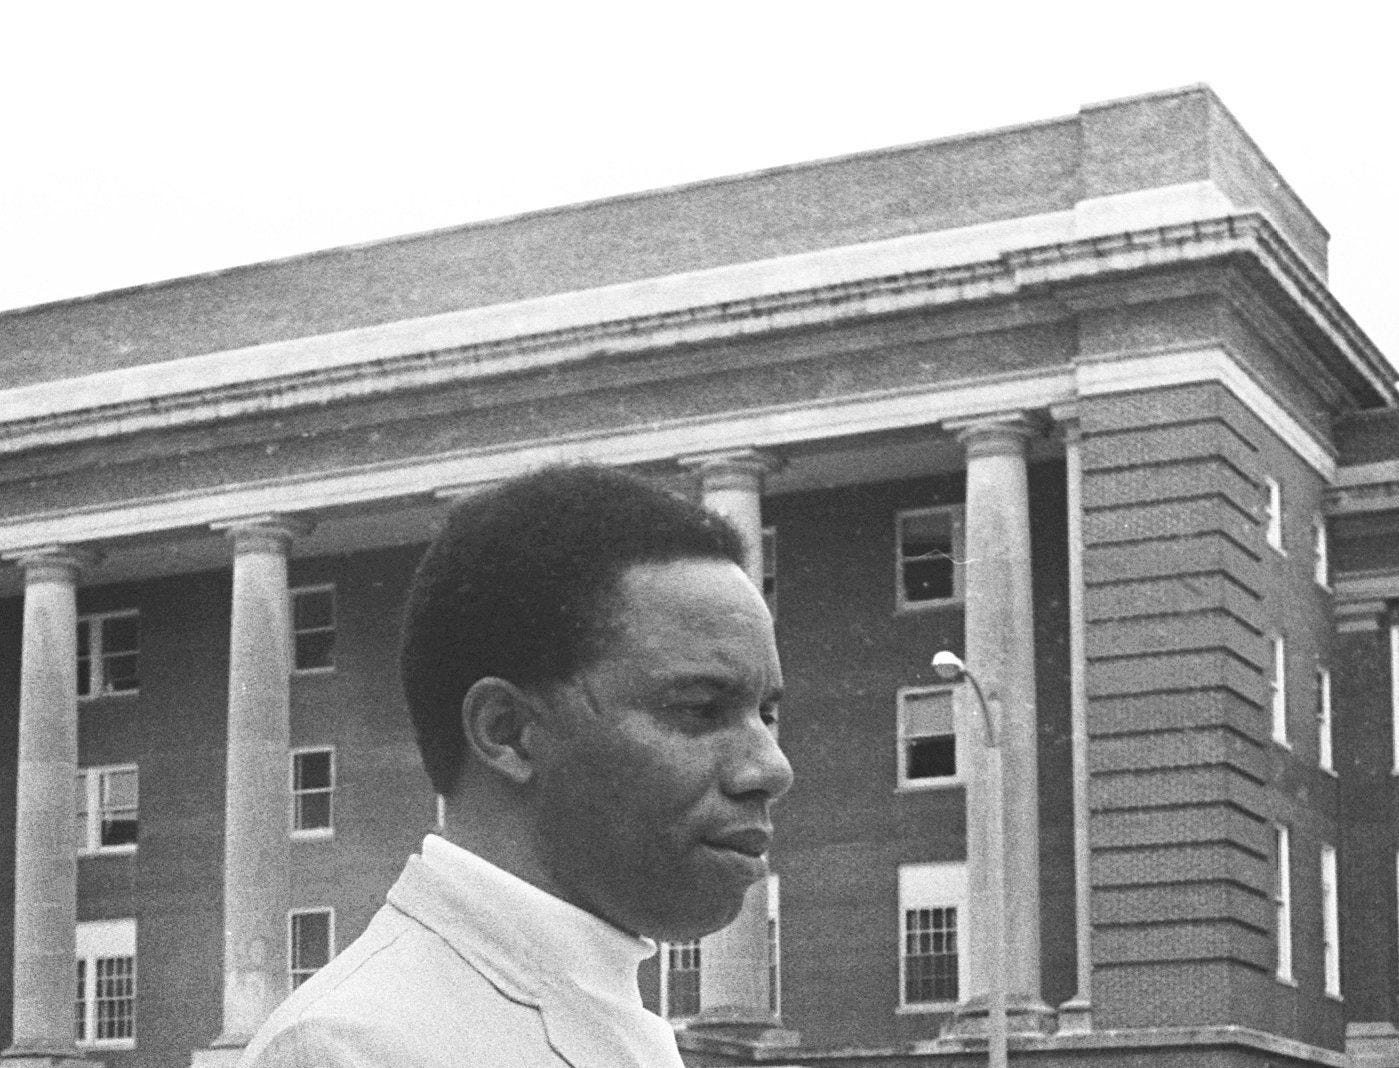 Ernest K. Davis, a former teacher at Riverview Junior High School, was named Memphis State University's first dean of Student Relations on  June 23, 1969.